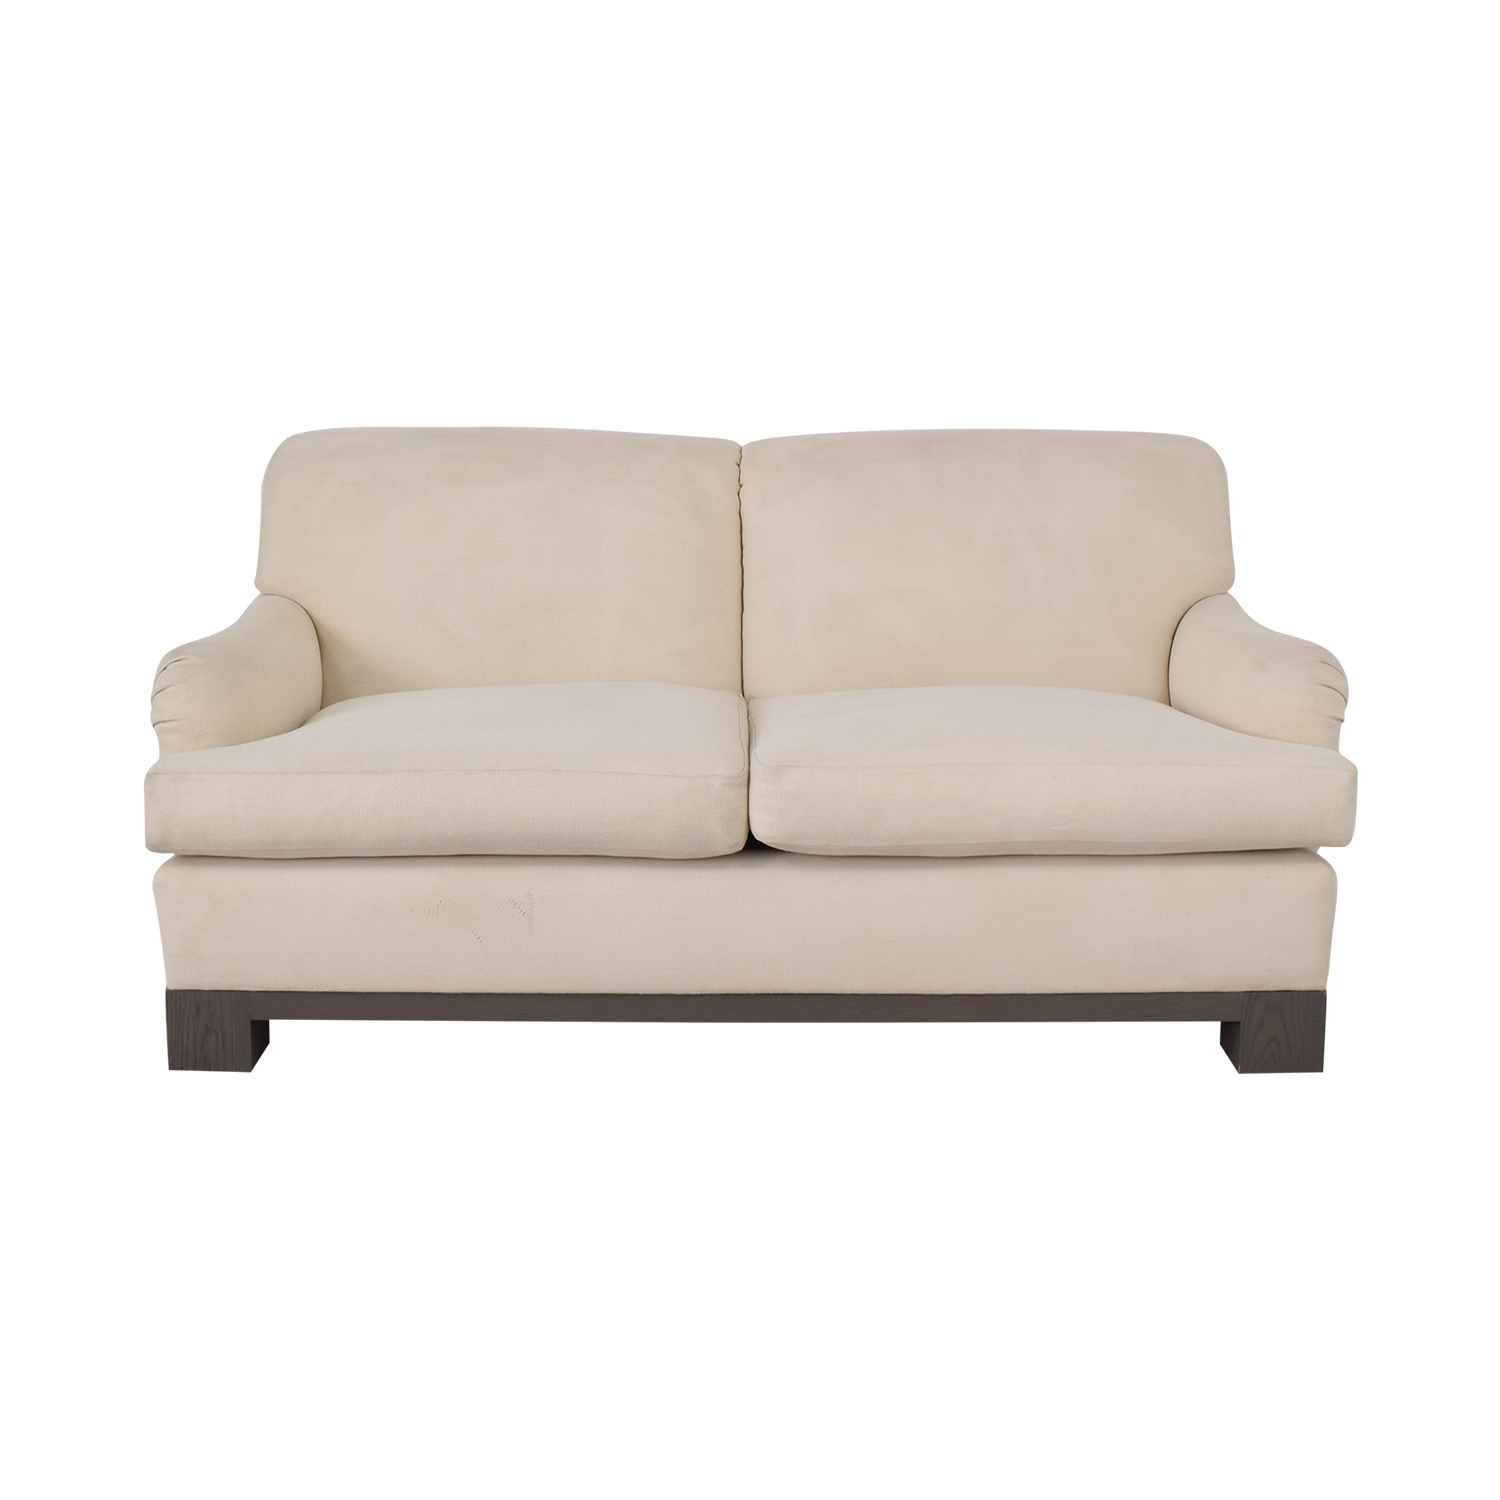 Furniture Masters Furniture Masters White Sofa discount